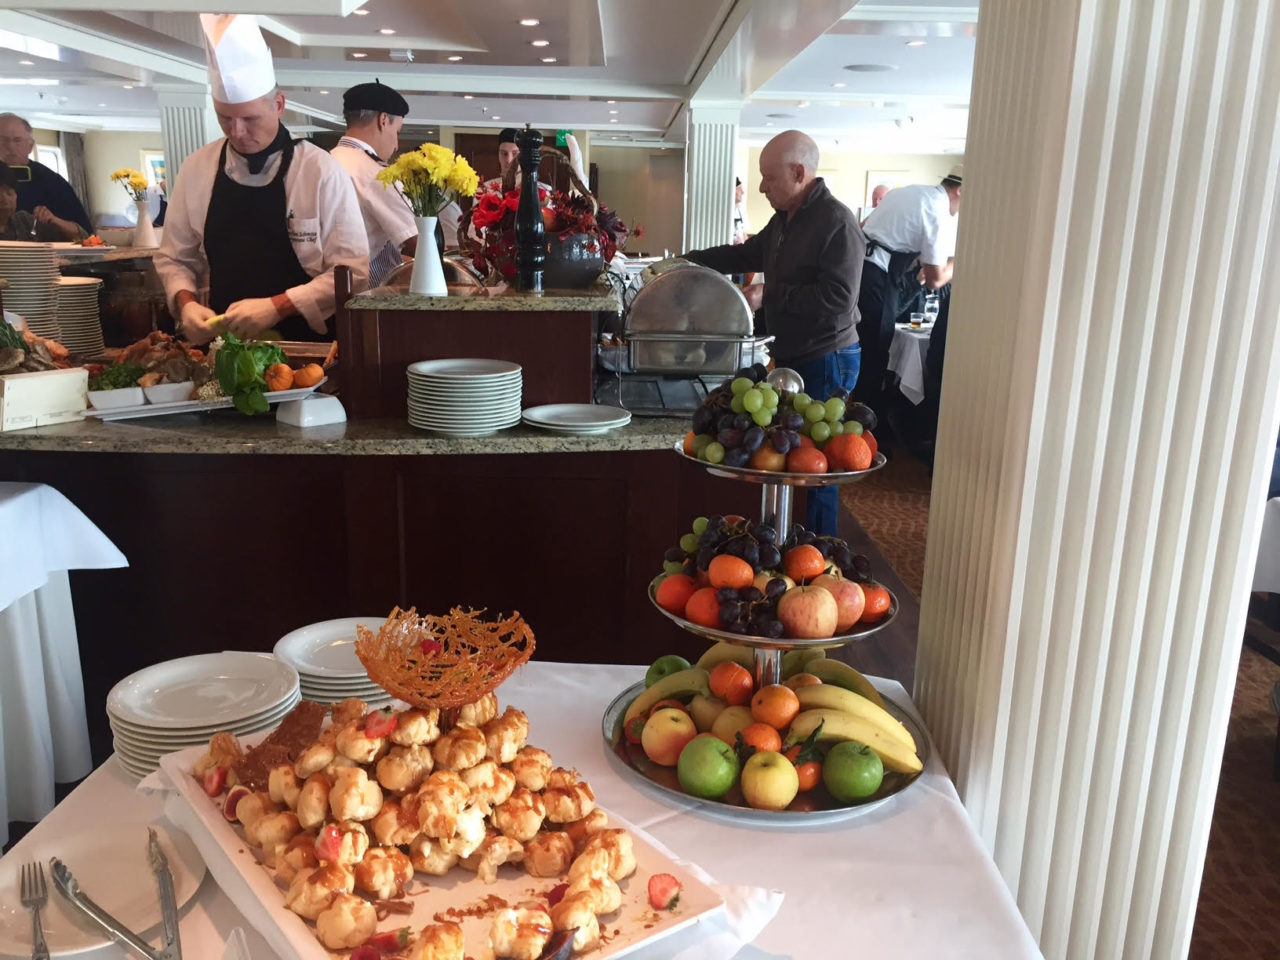 Croque-en-Bouche and Fruit platters ~ Paris and Normandie AmaWaterways Cruise